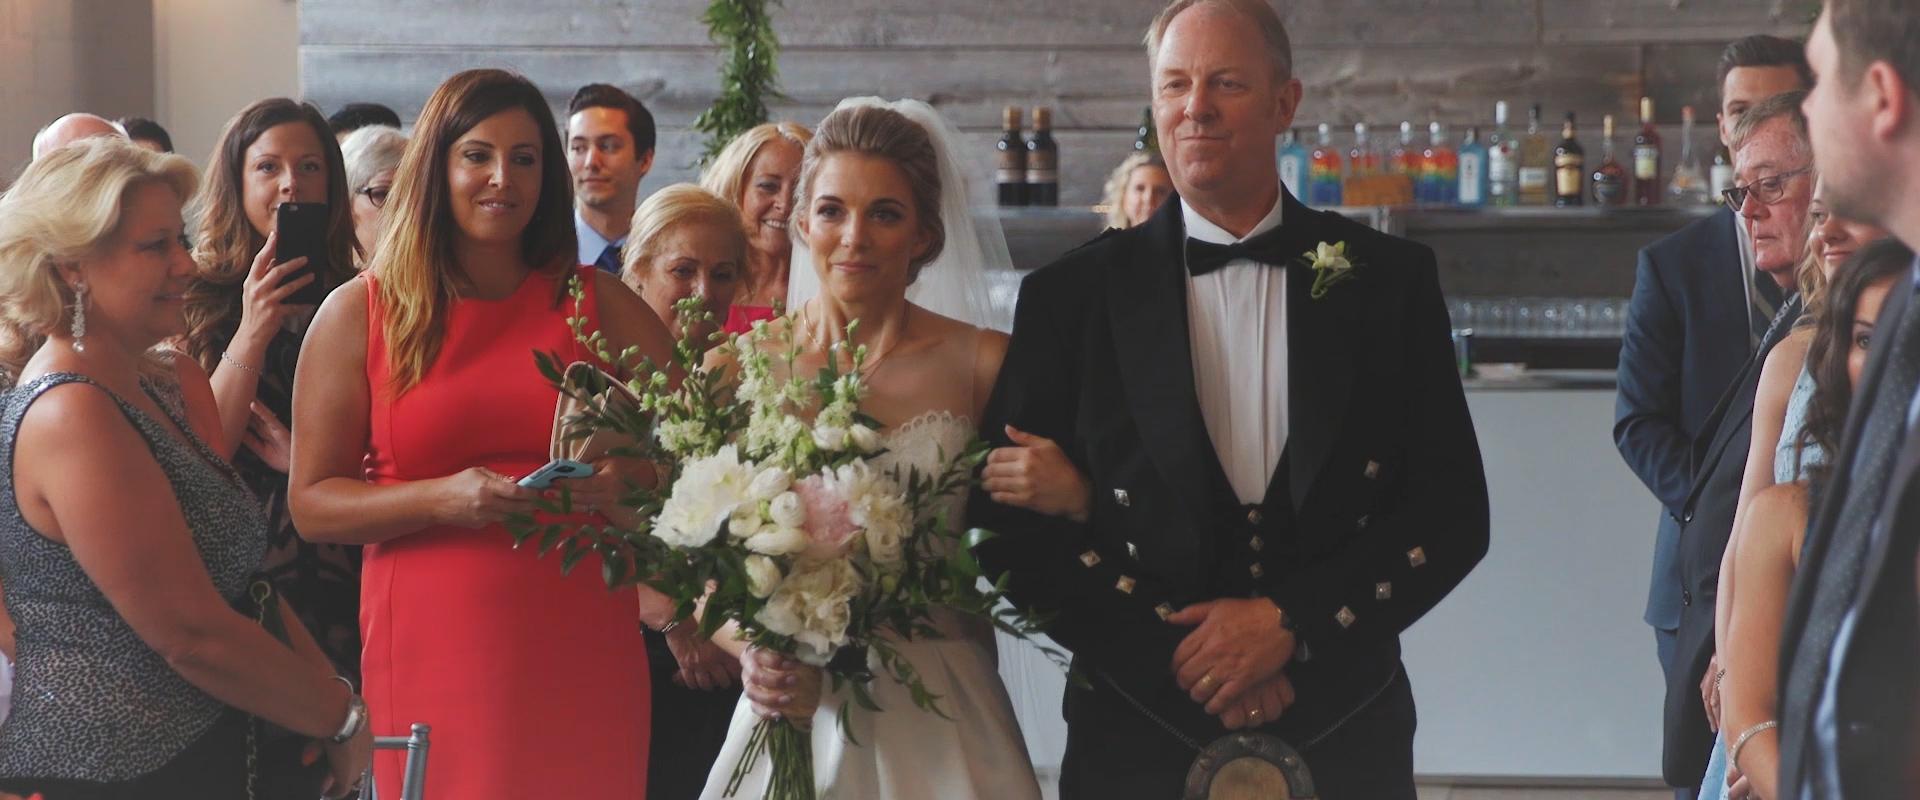 An image of a father walking his daughter down the aisle at her wedding ceremony; taken from a Toronto Wedding Video